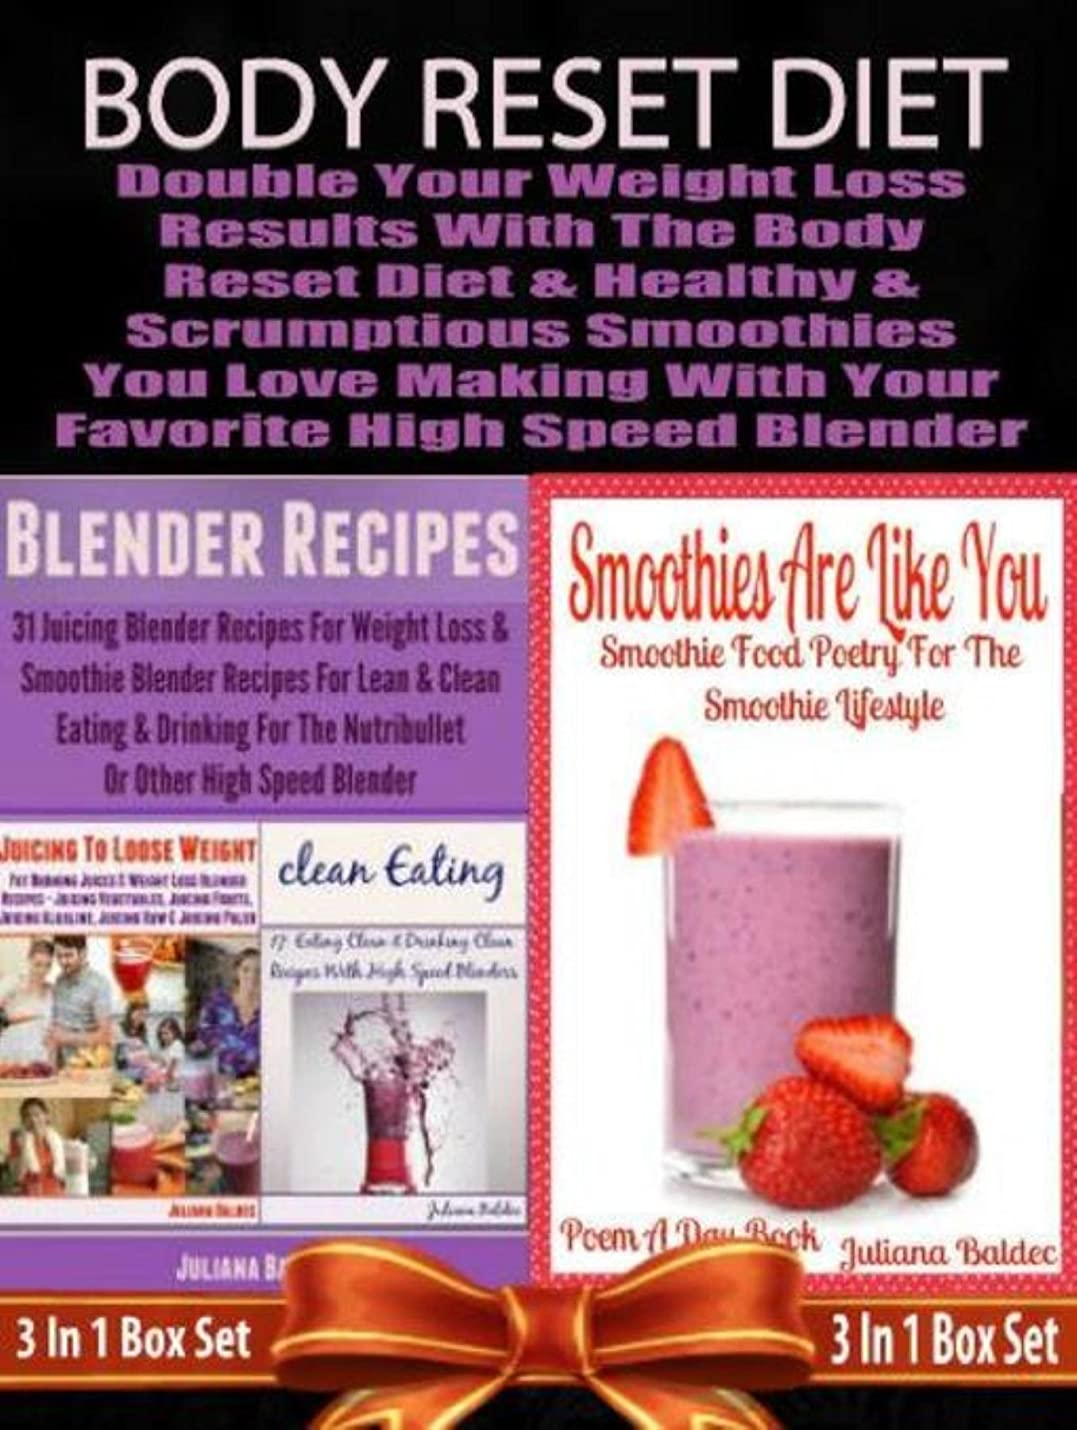 愛撫遅らせるアカウントBody Reset Diet: Double Your Weight Loss Results With The Body Reset Diet And The Healthy & Scrumptious Smoothies You Love Making With Your Favorite High ... Book 3: Paleo Is Like You! (English Edition)